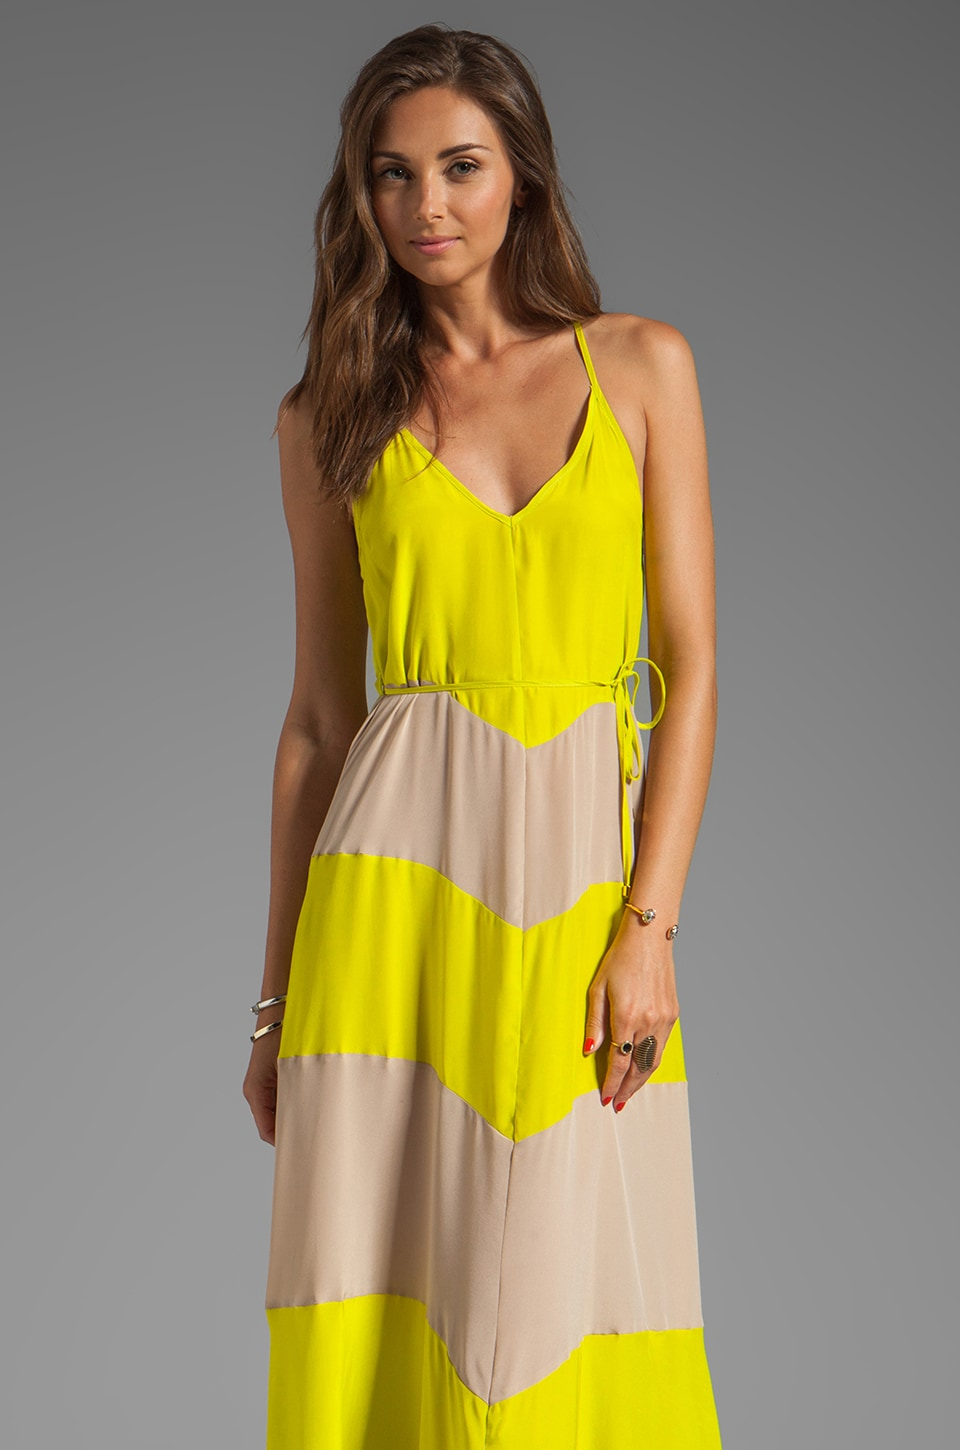 Karina Grimaldi Somer Maxi Dress in Neon Yellow Combo